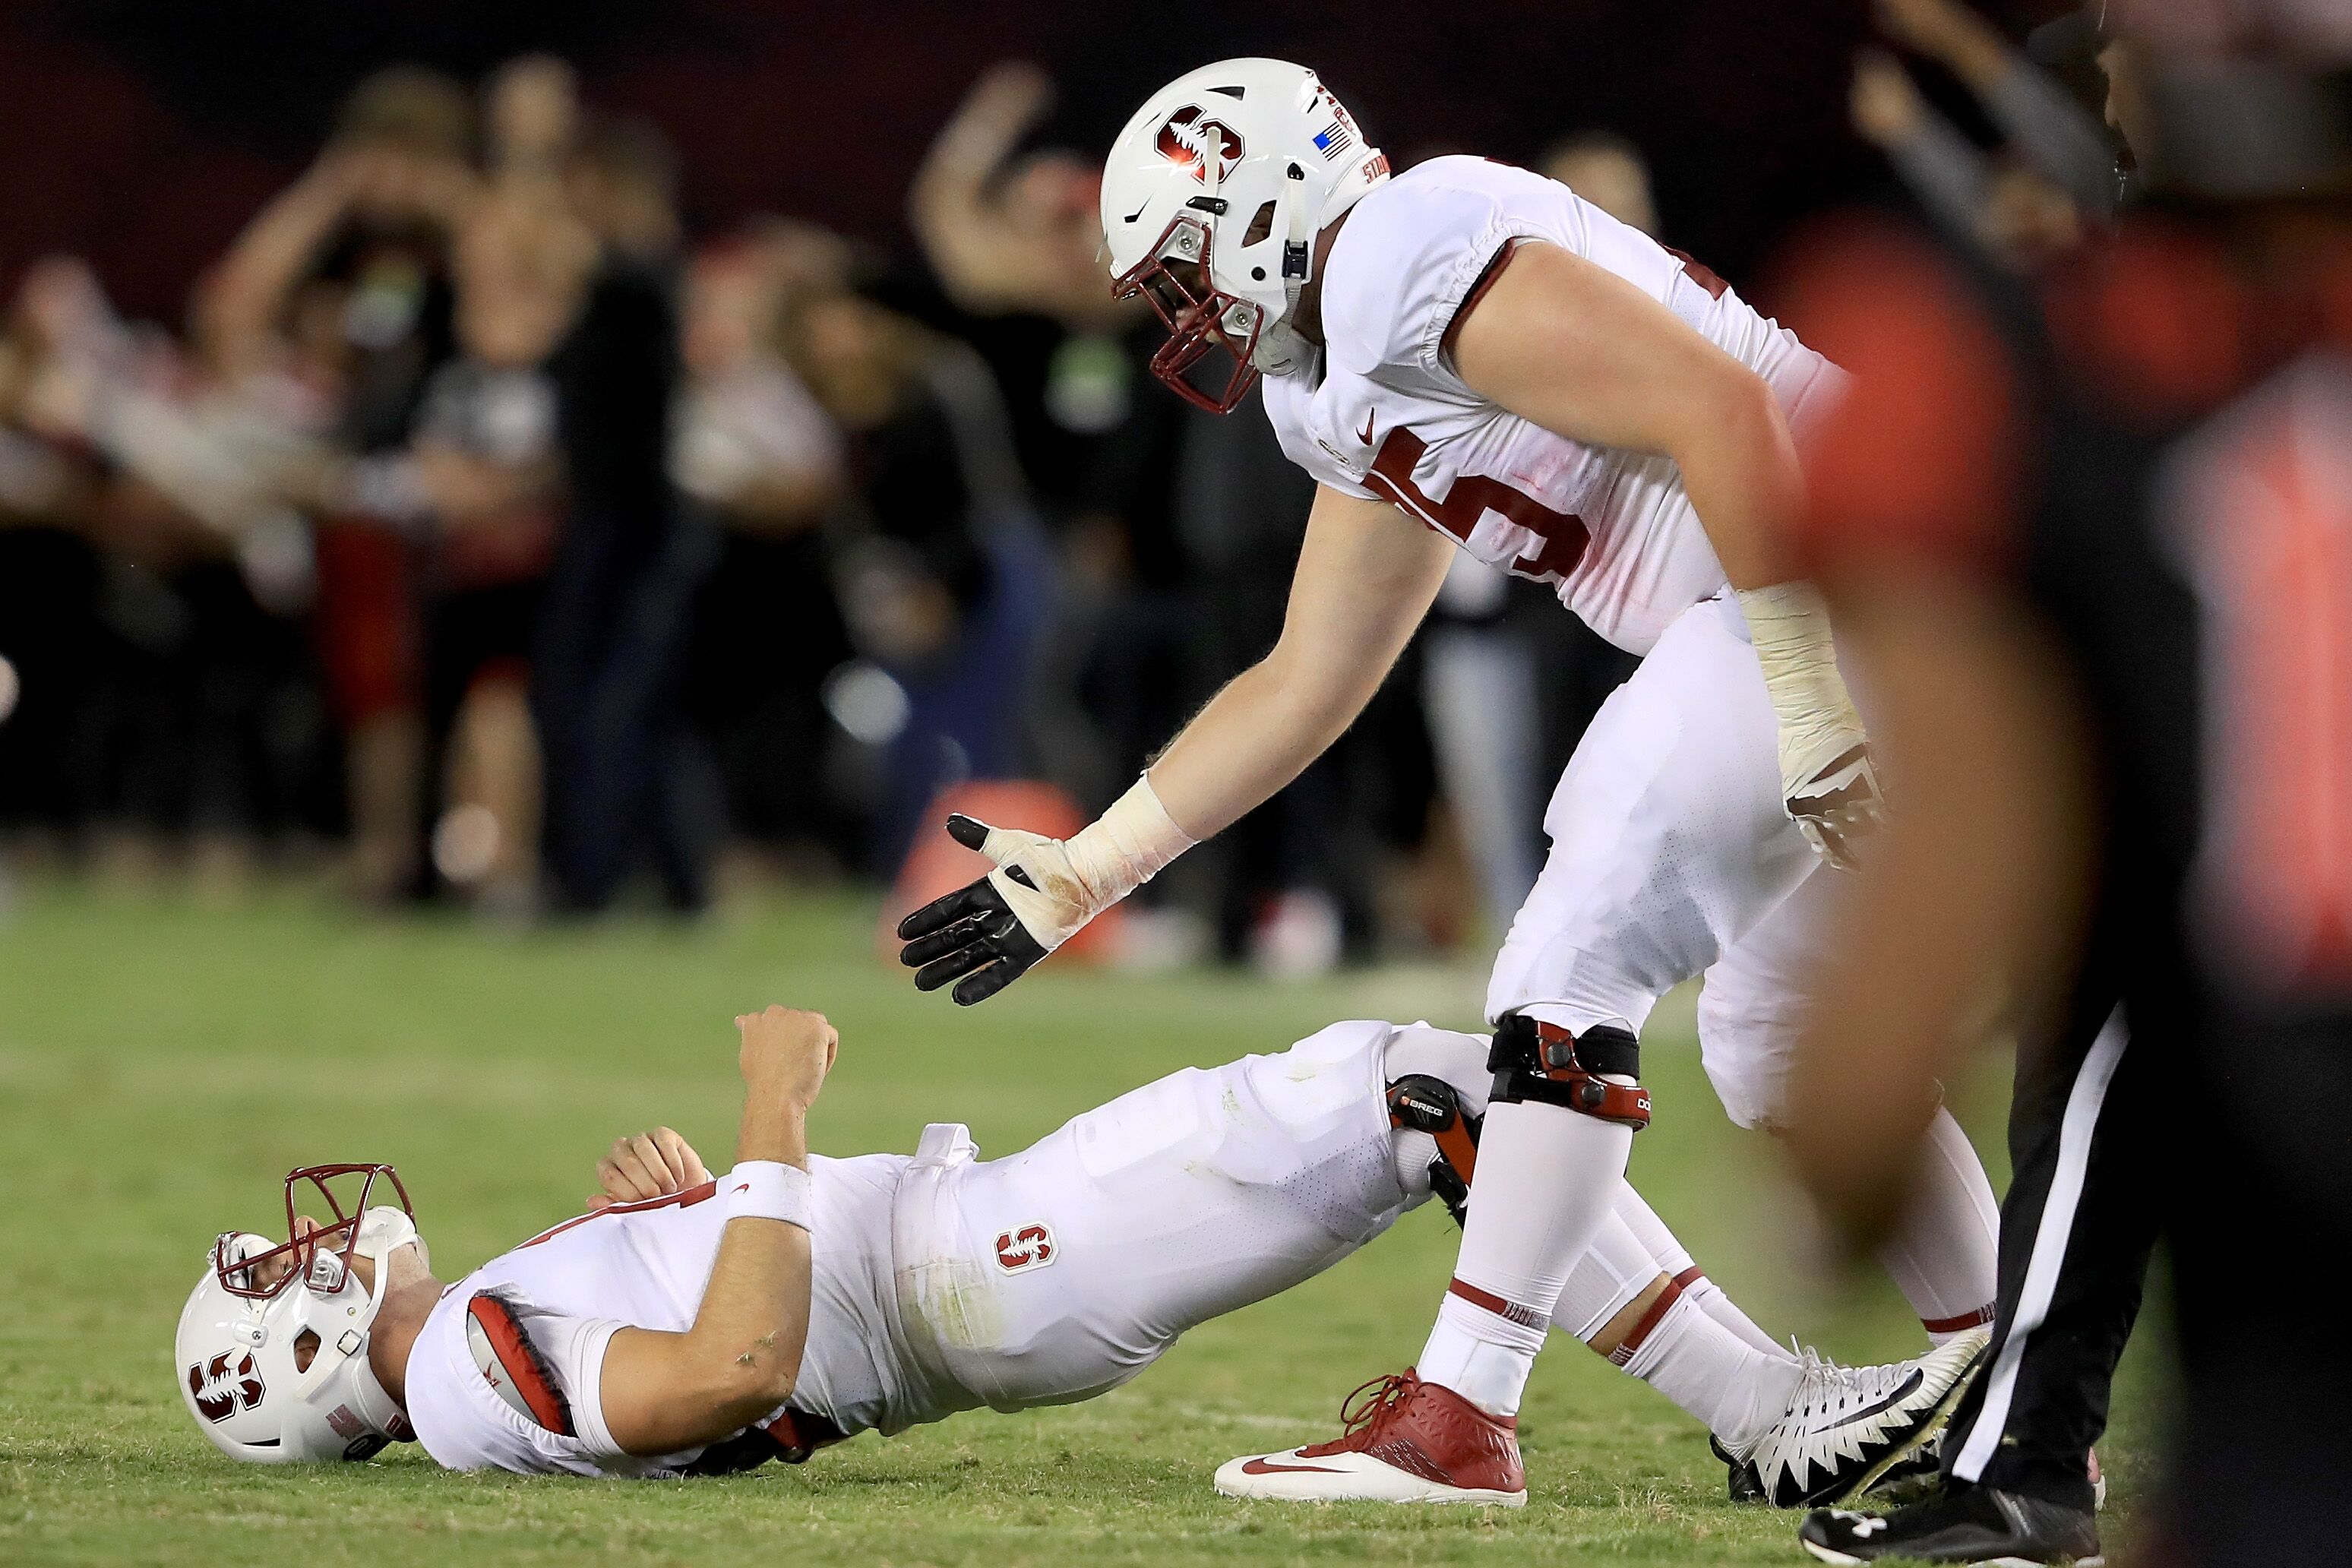 View complete individual and team football stat leaders for the Stanford Cardinal including passing rushing and defensive statistics